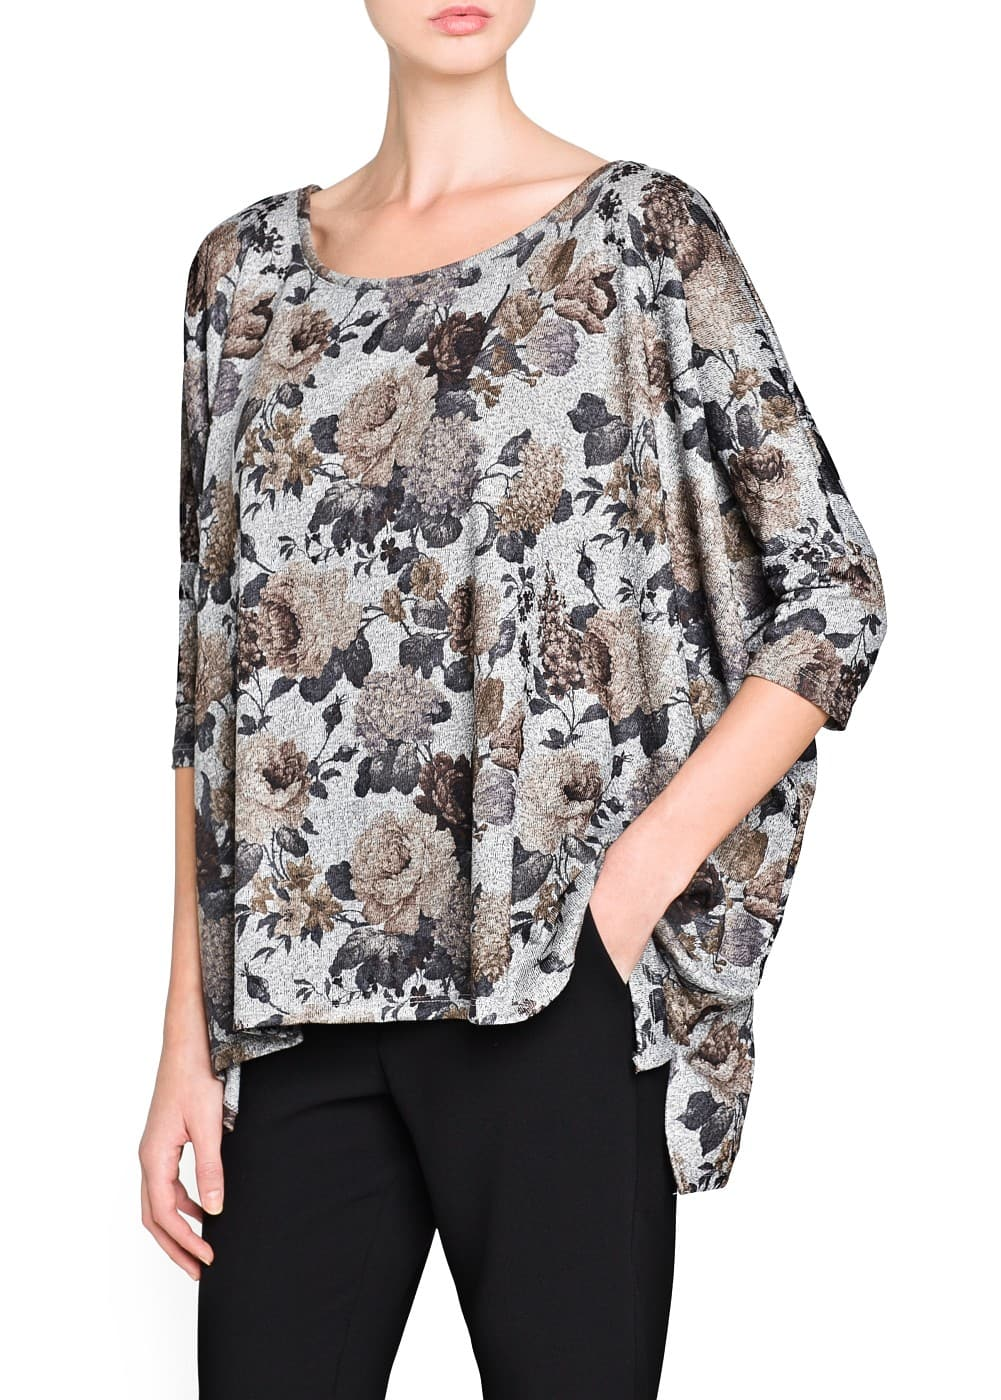 Floral print oversize t-shirt